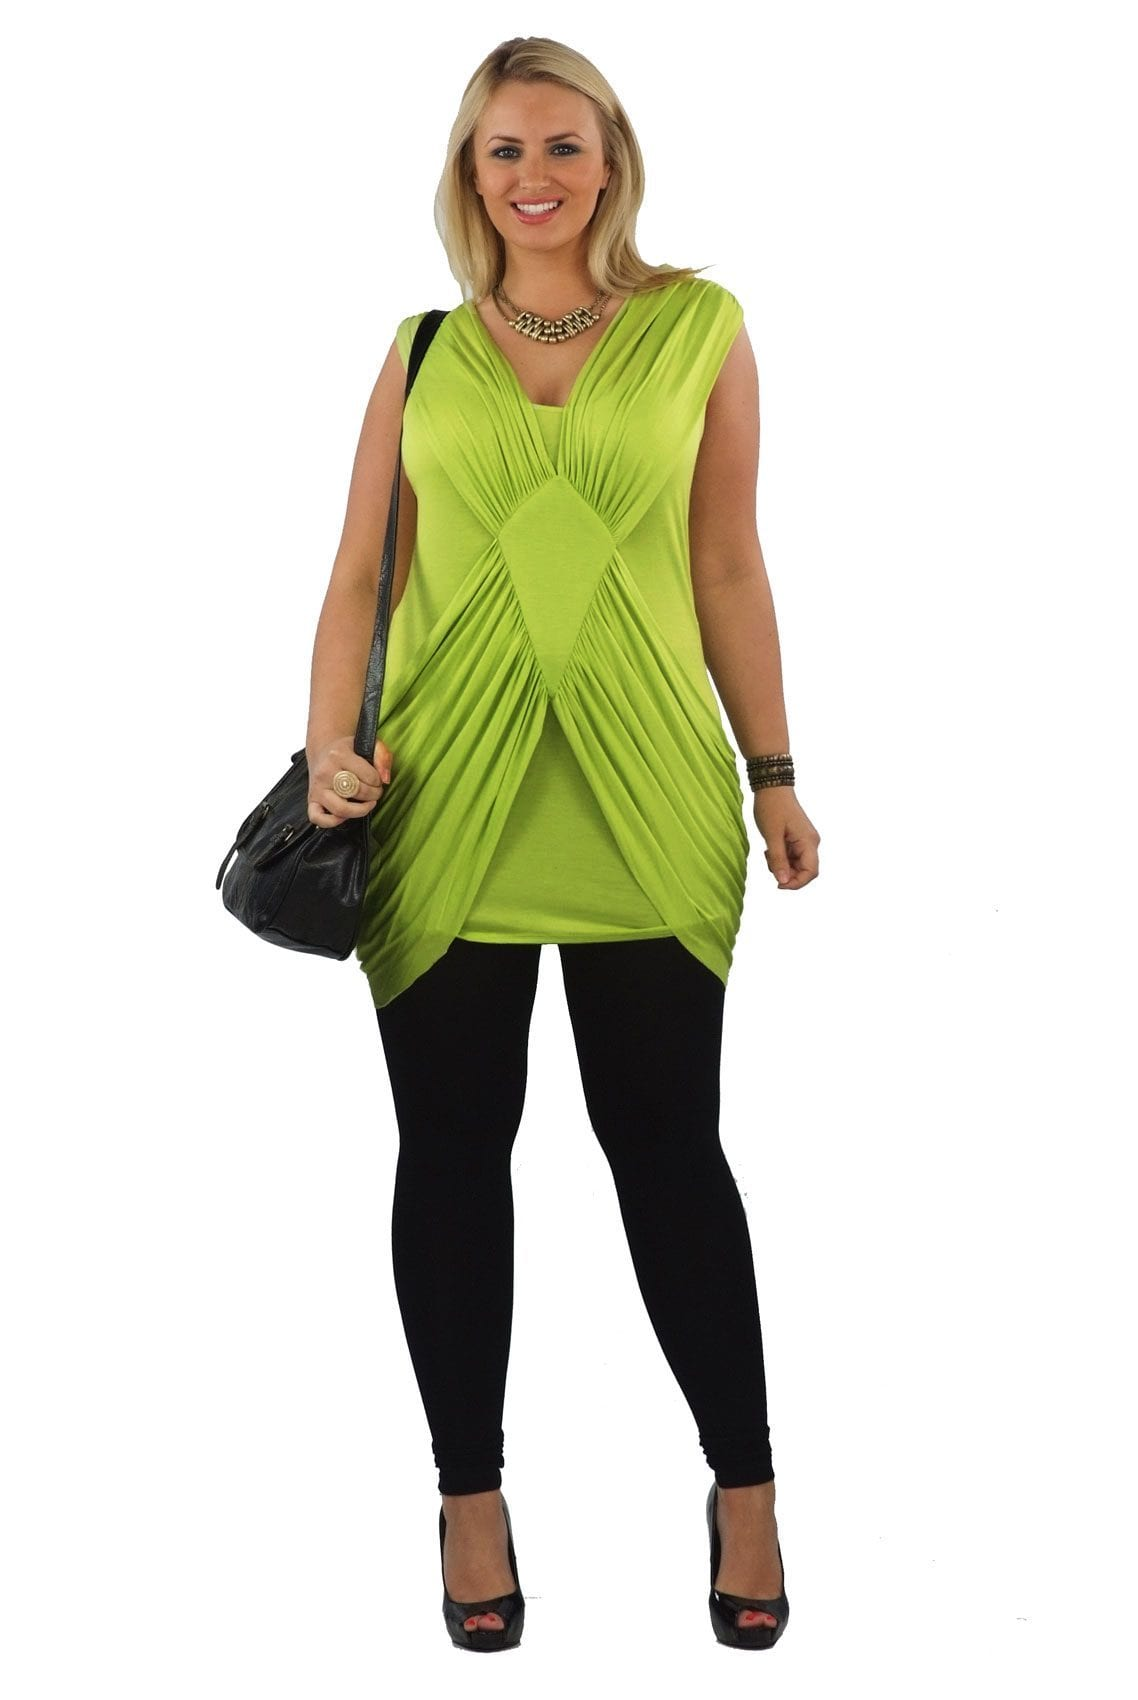 17 Fashion Tips For Plus Size Women Over 50 - Outfits Ideas